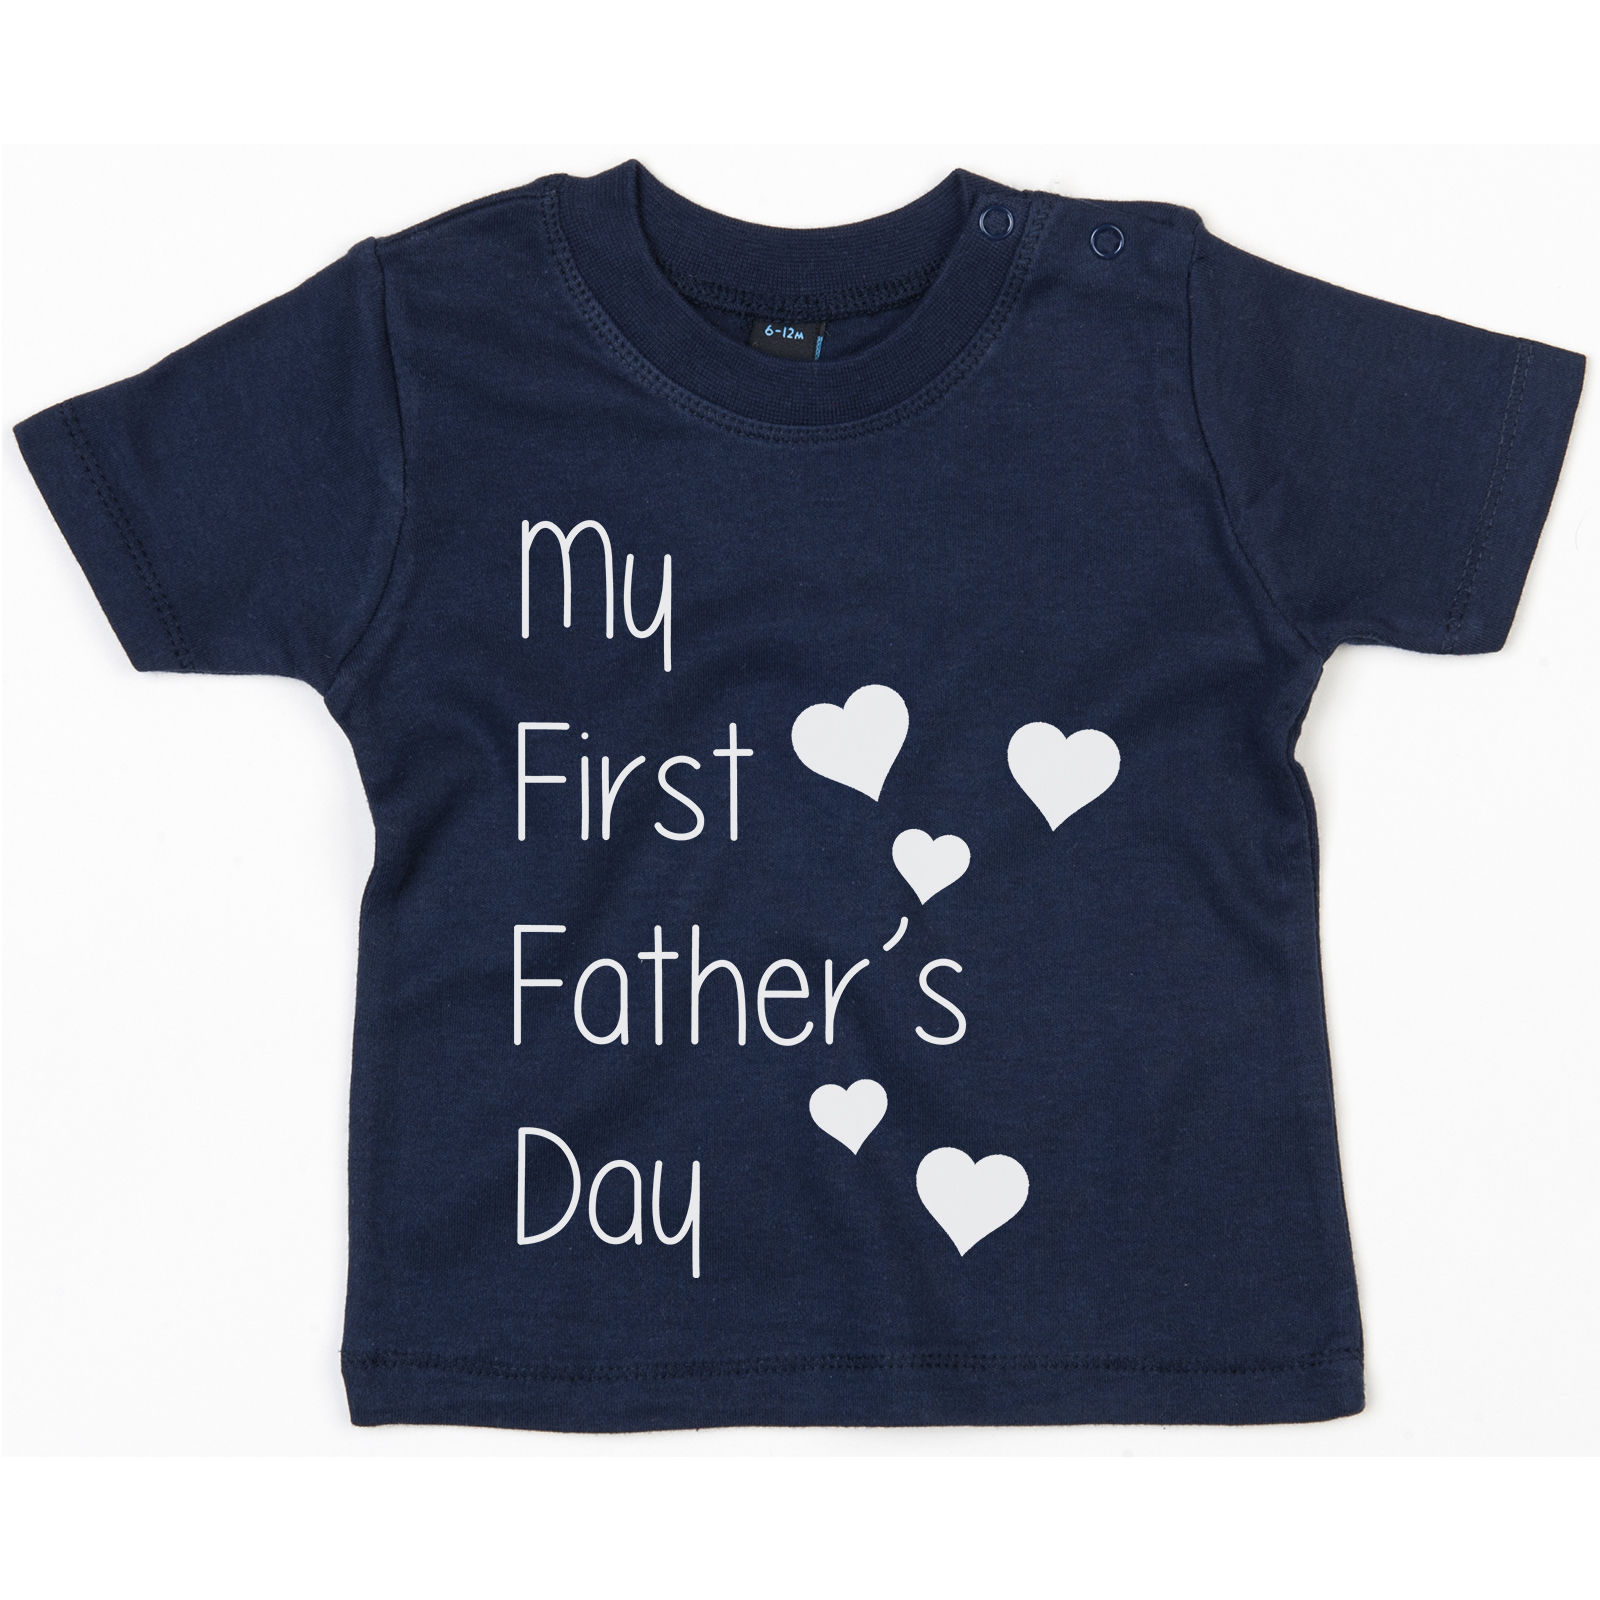 10b0785e My First Fathers Day Baby T Shirt Romper Cute Gift Dad Daddy Newborn Tee  Hearts